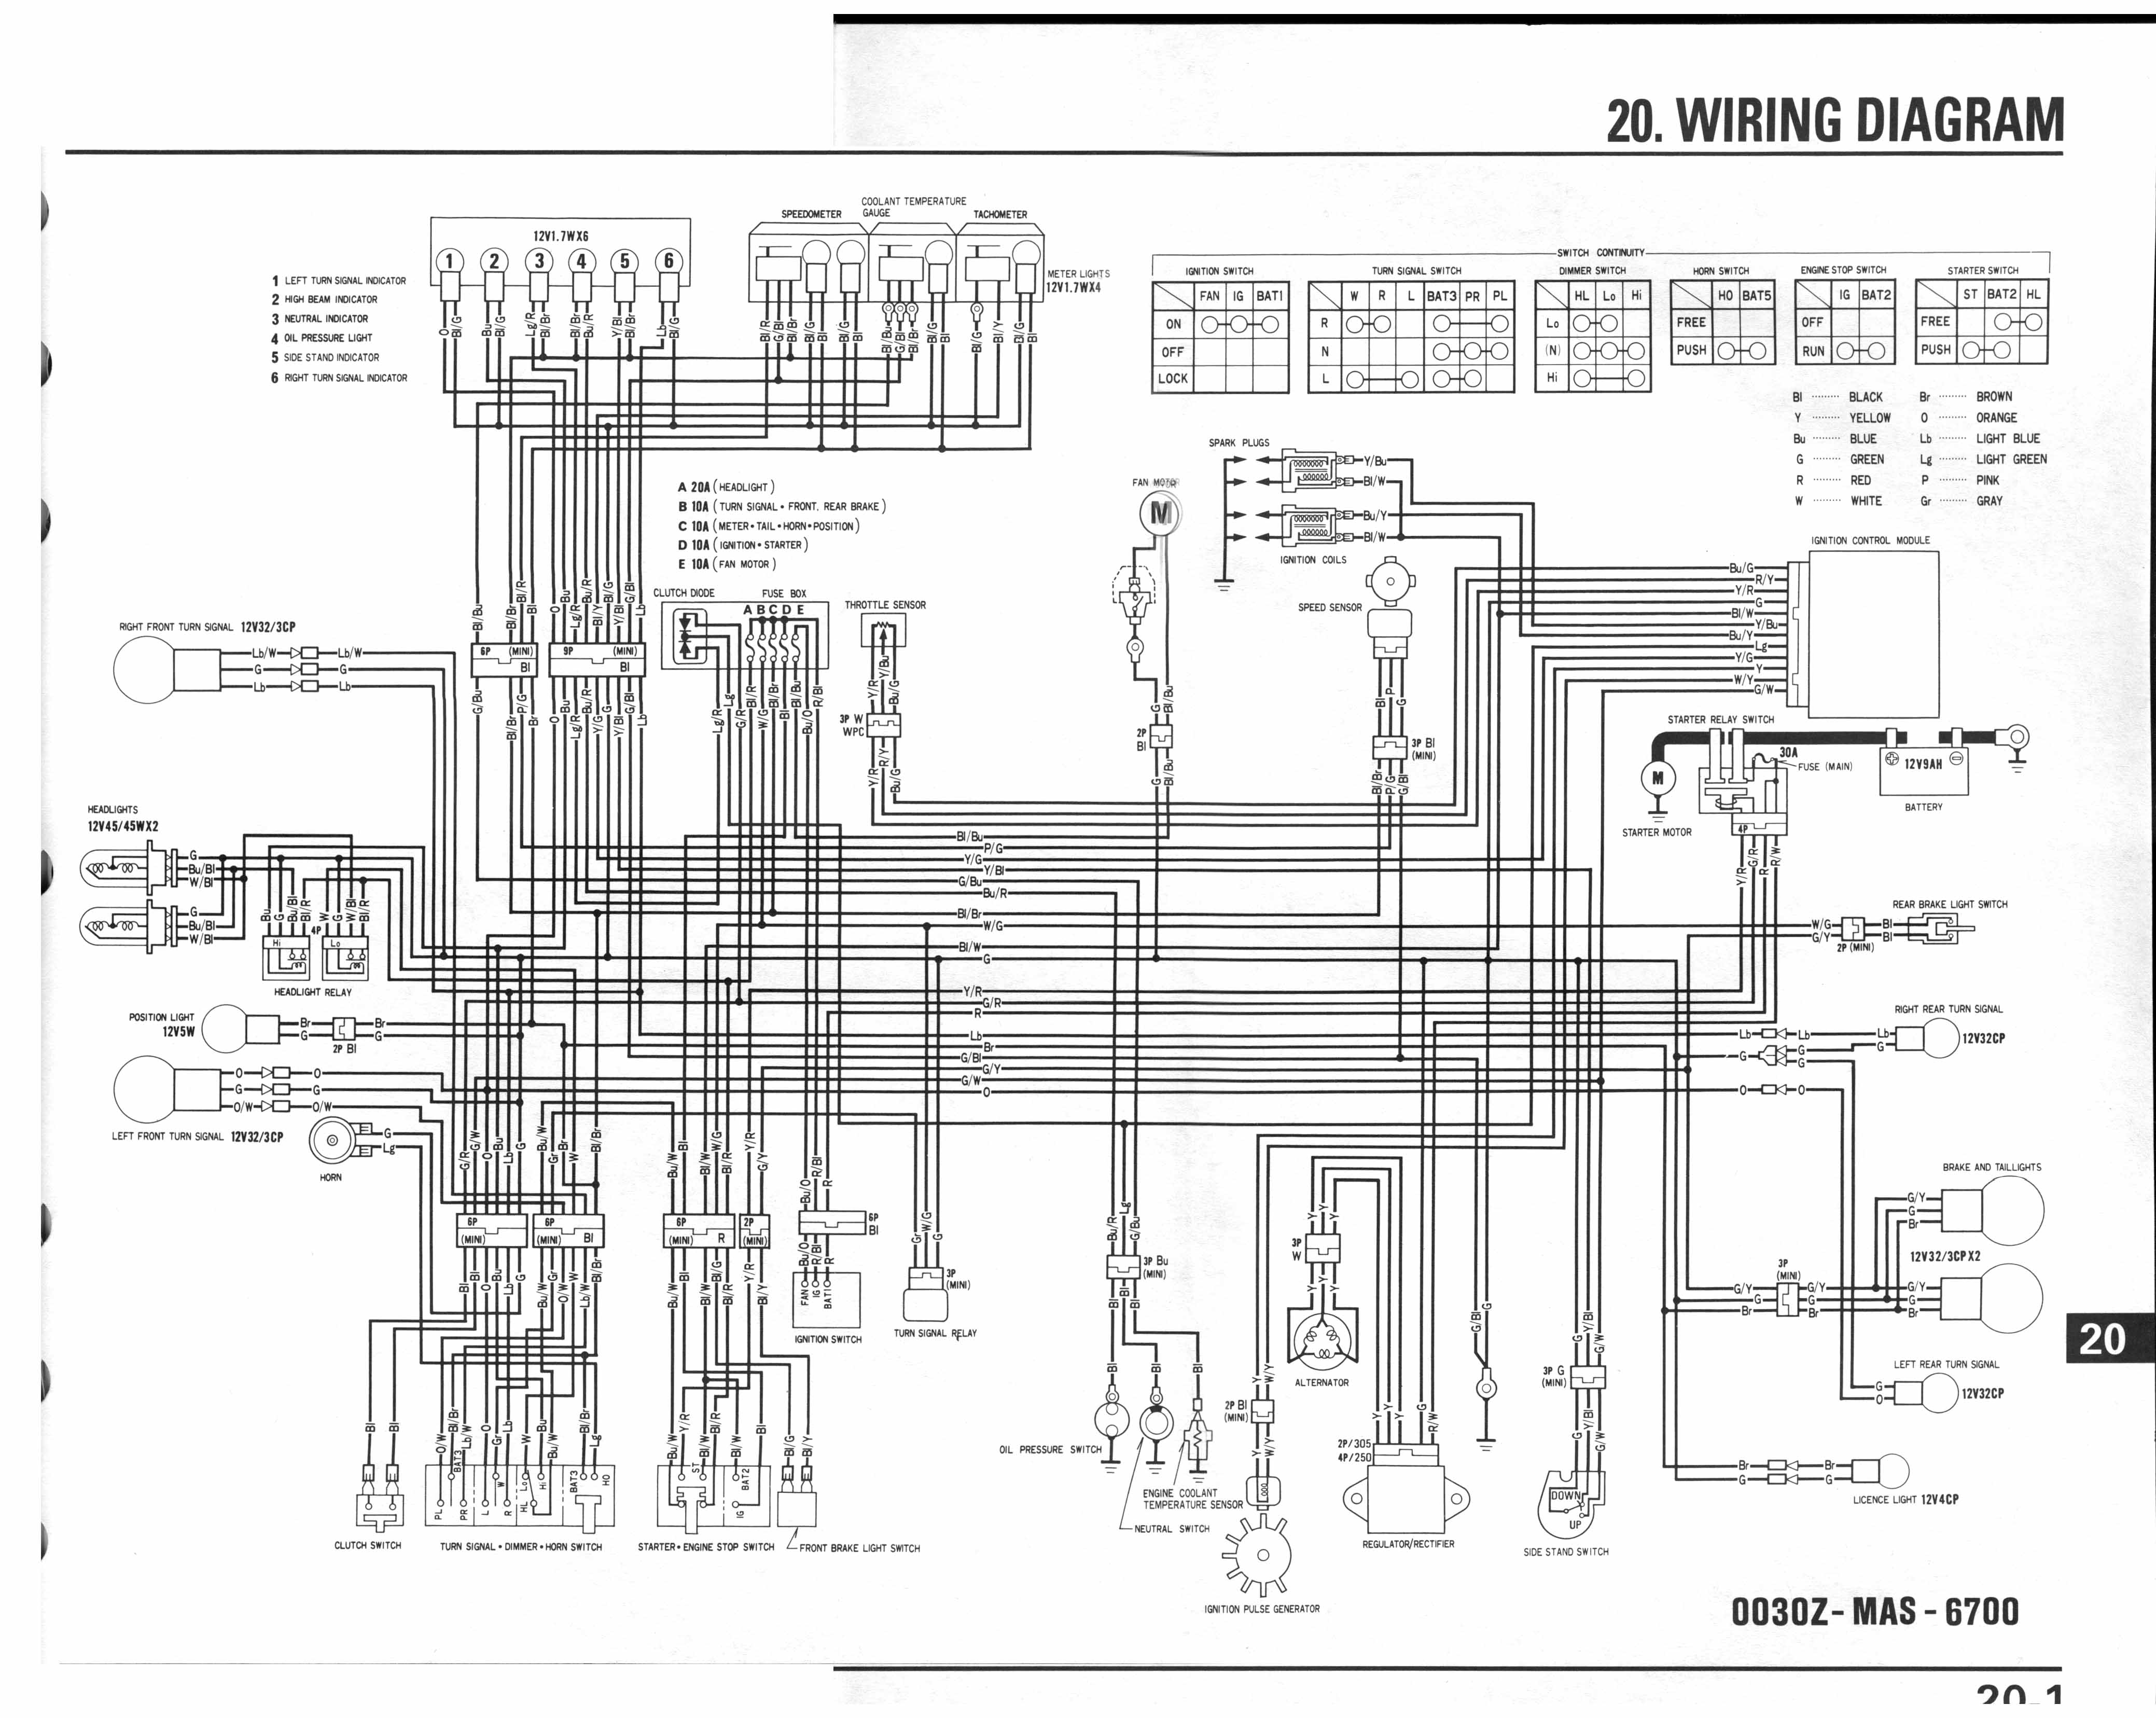 900rr Wiring Harness Library Model Trane Diagram Grca40